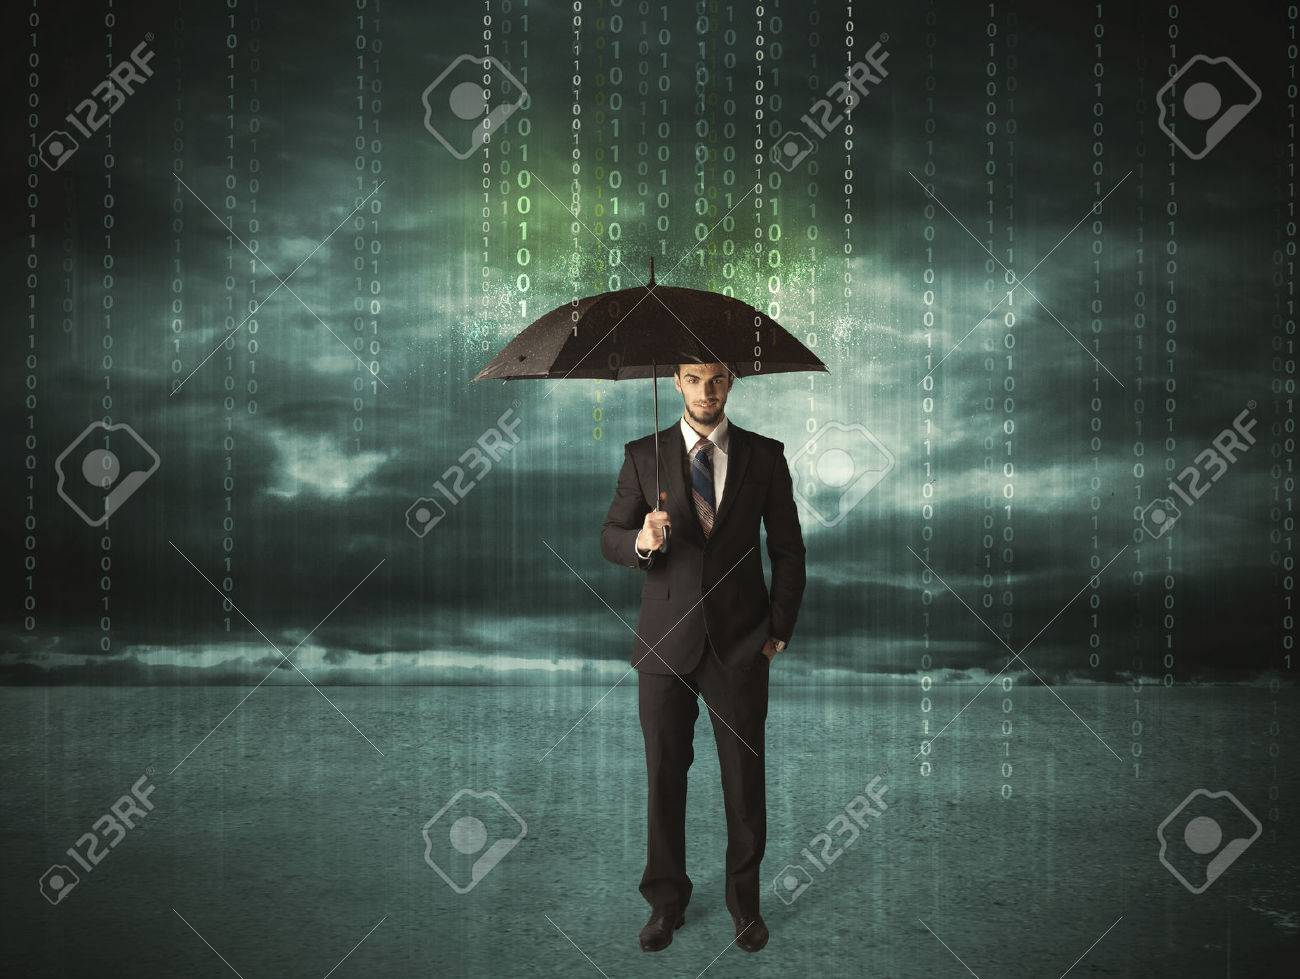 Business man standing with umbrella data protection concept on background Stock Photo - 50235112